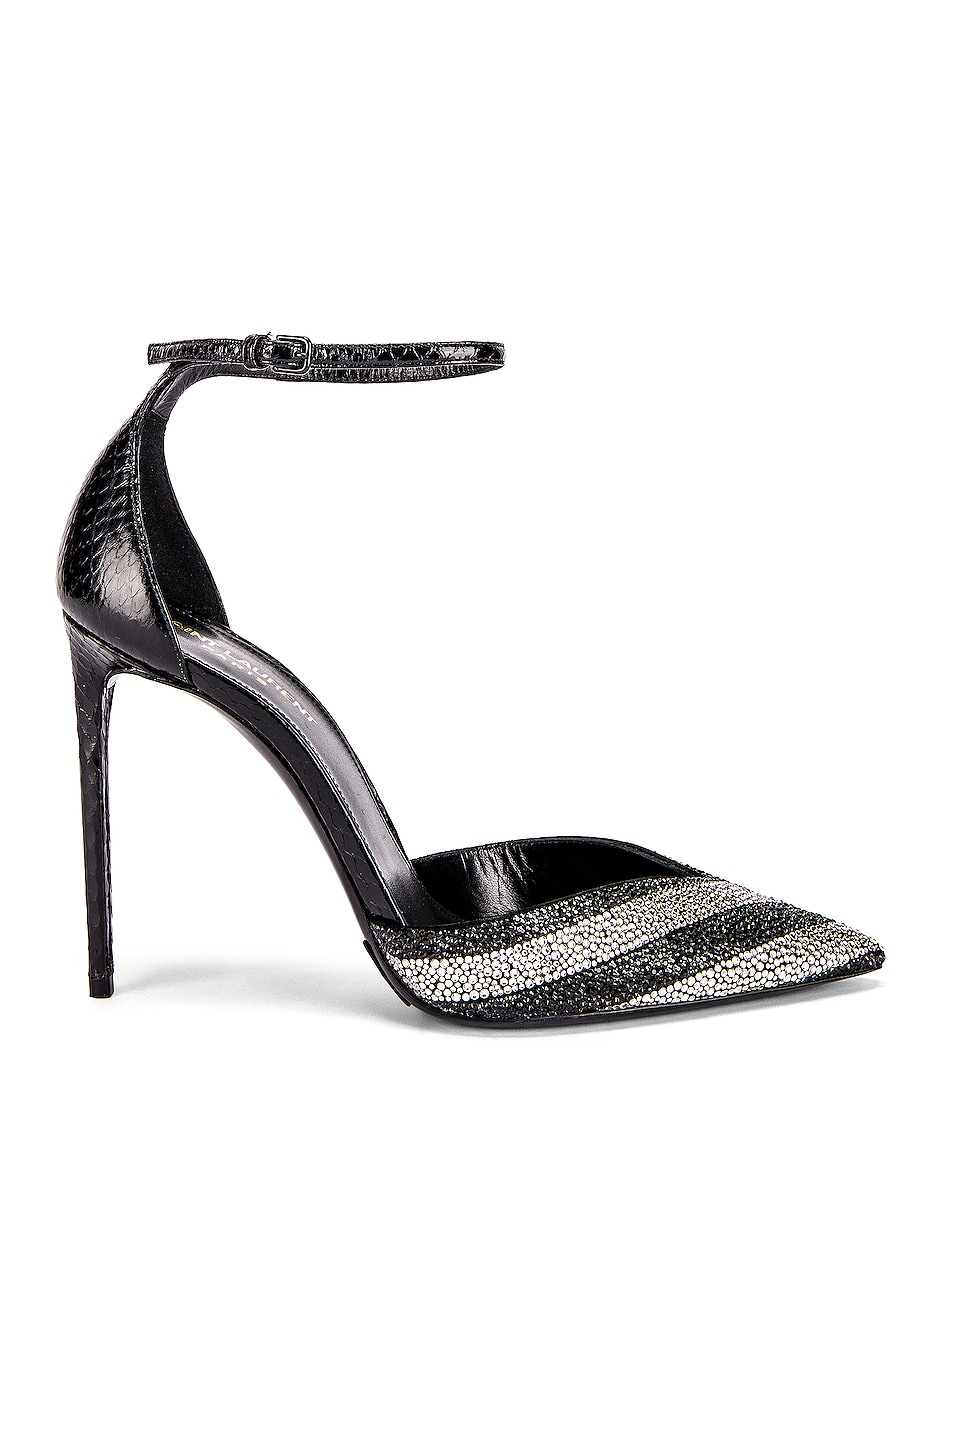 Image 1 of Saint Laurent Zoe Crystal Ankle Strap Heels in Black